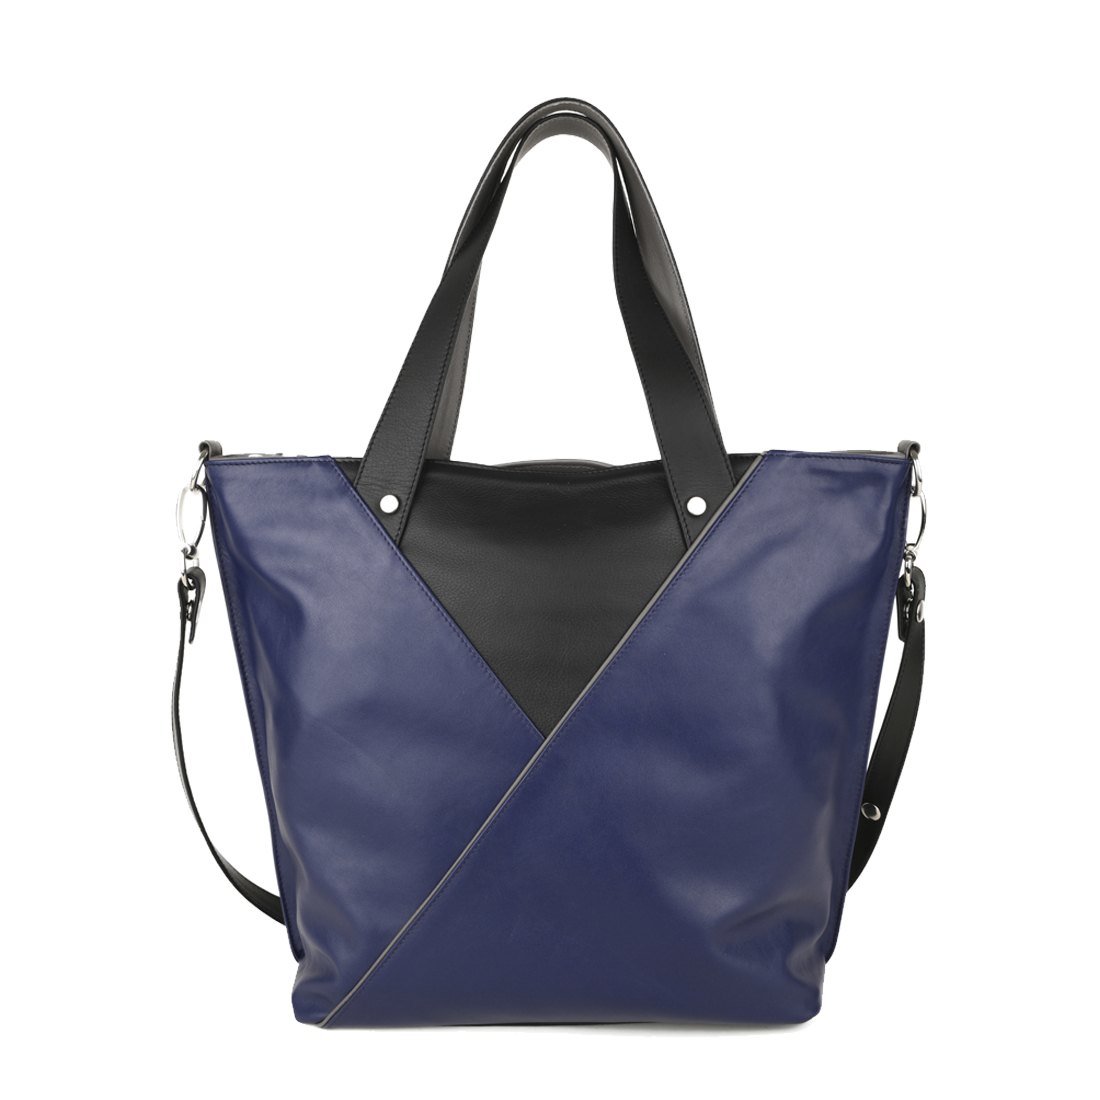 Amanda Blue Leather Tote Bag